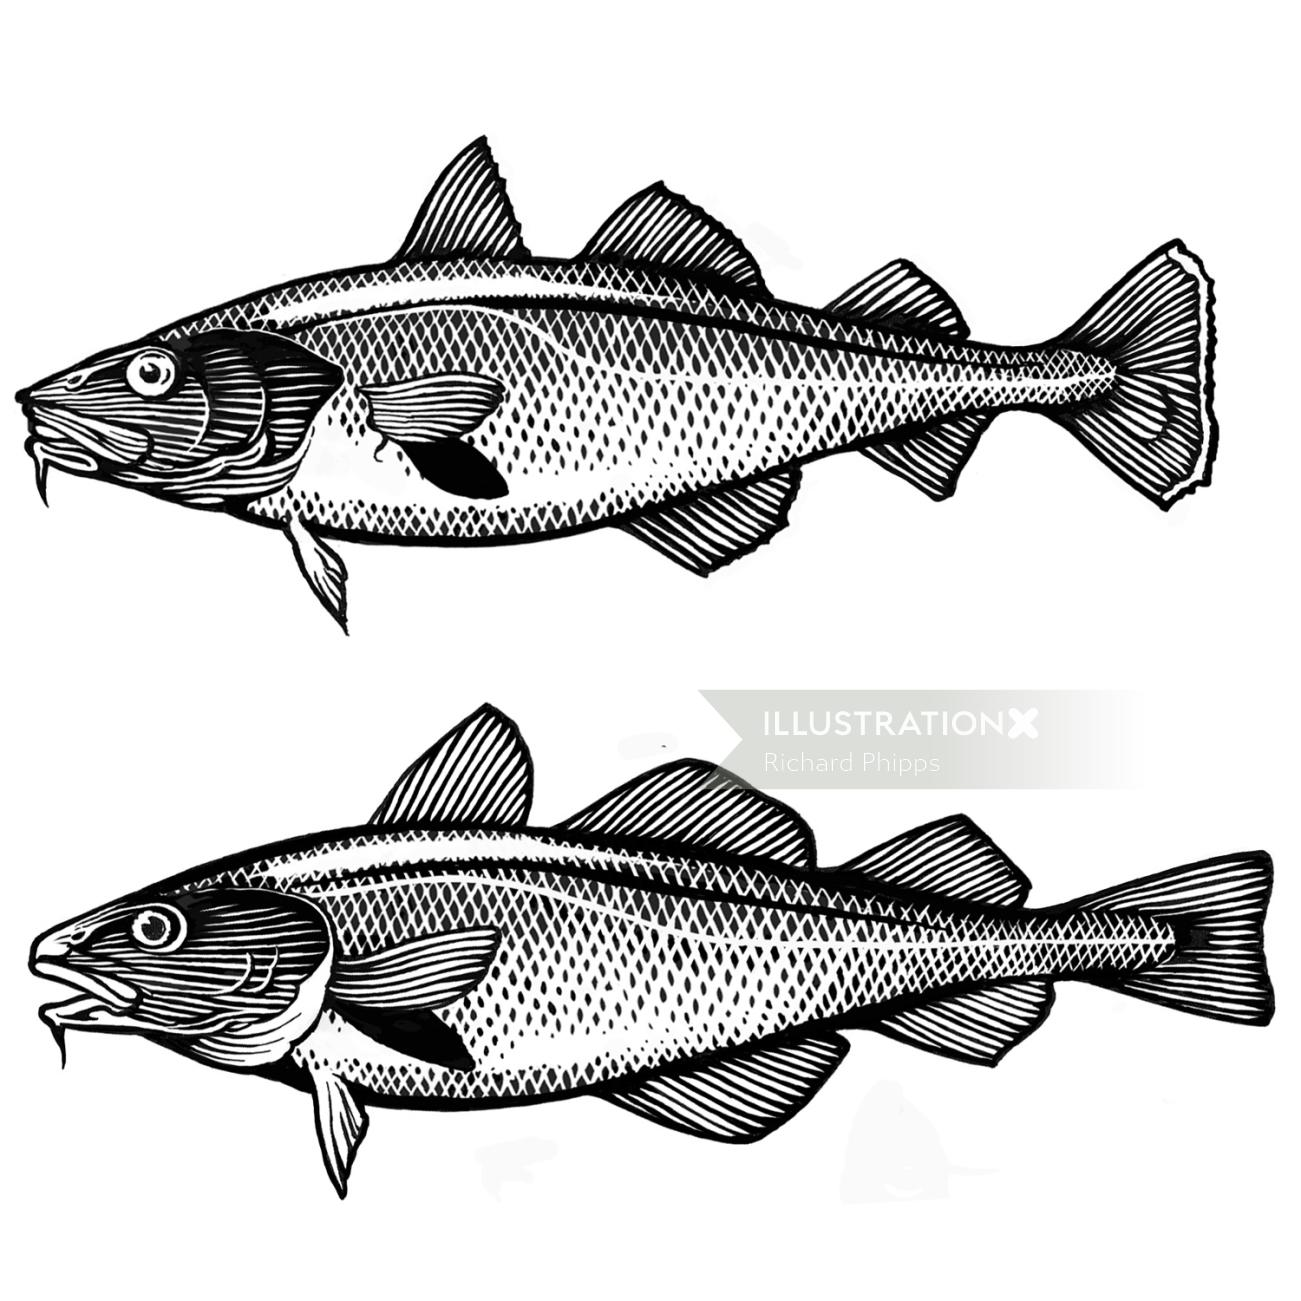 Fish packaging graphic design